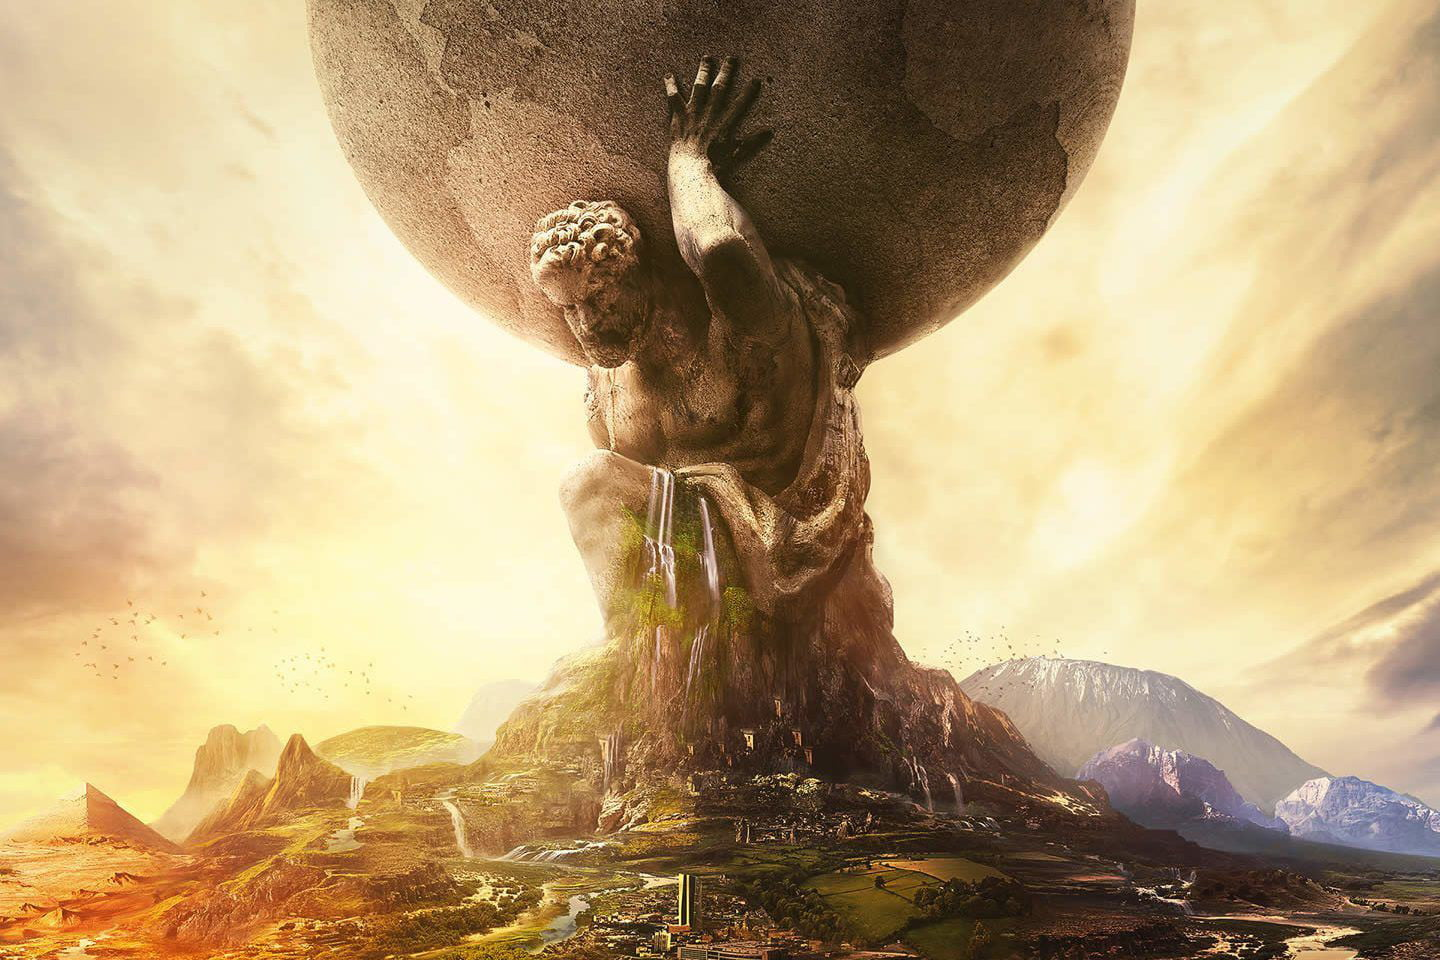 Master Civilization VI with these starting tips for new players and veterans